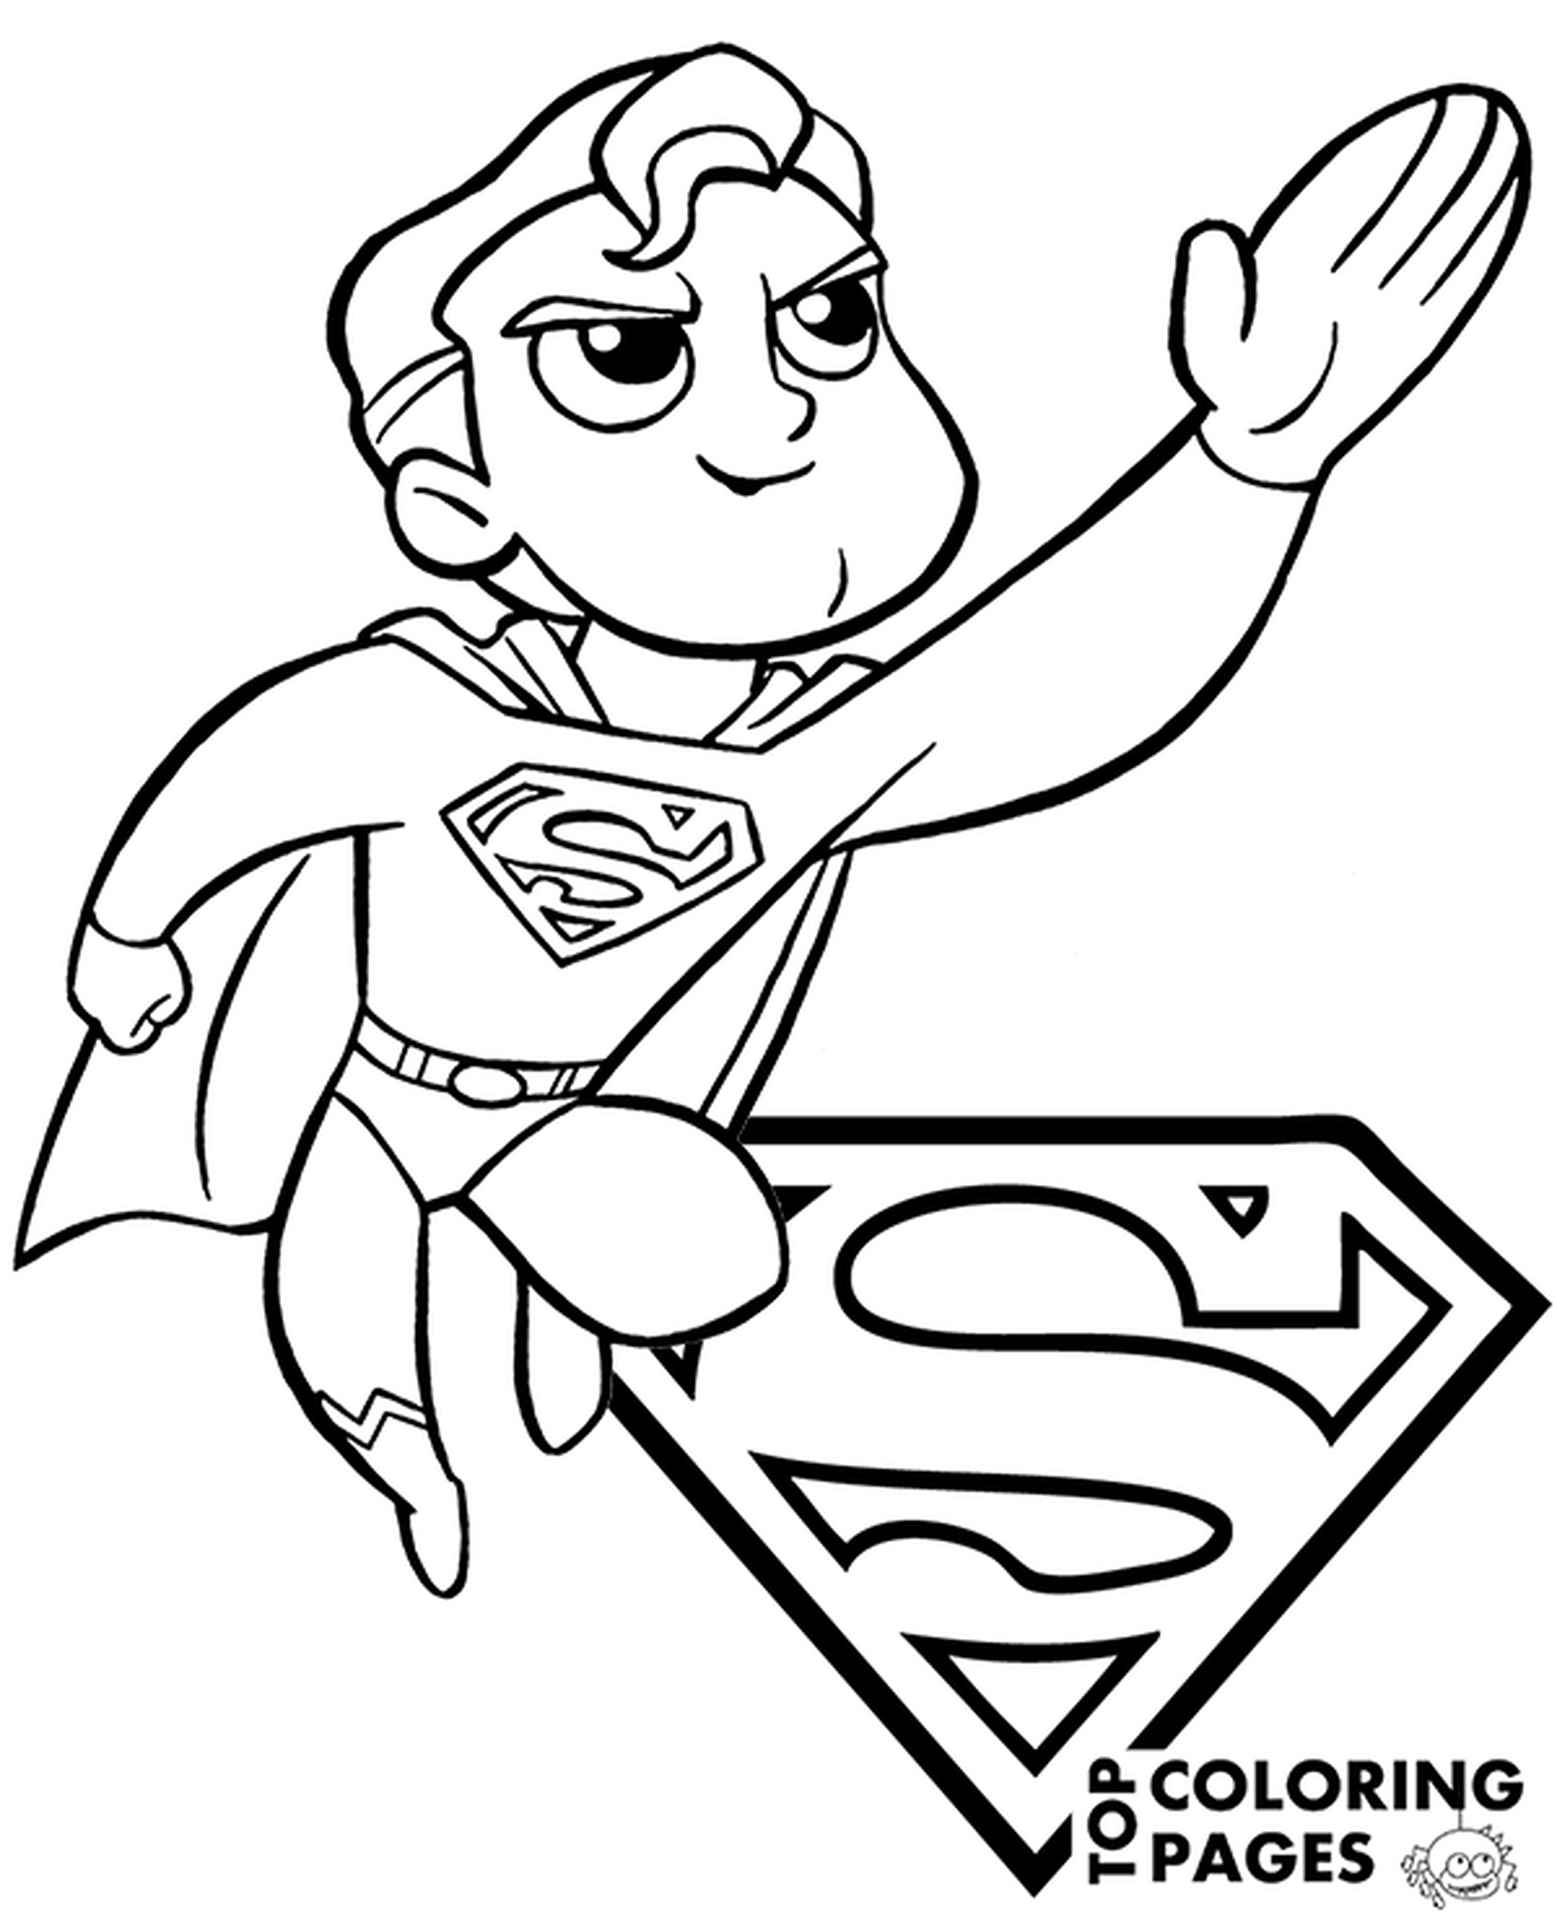 Cartoon Style Coloring Pages